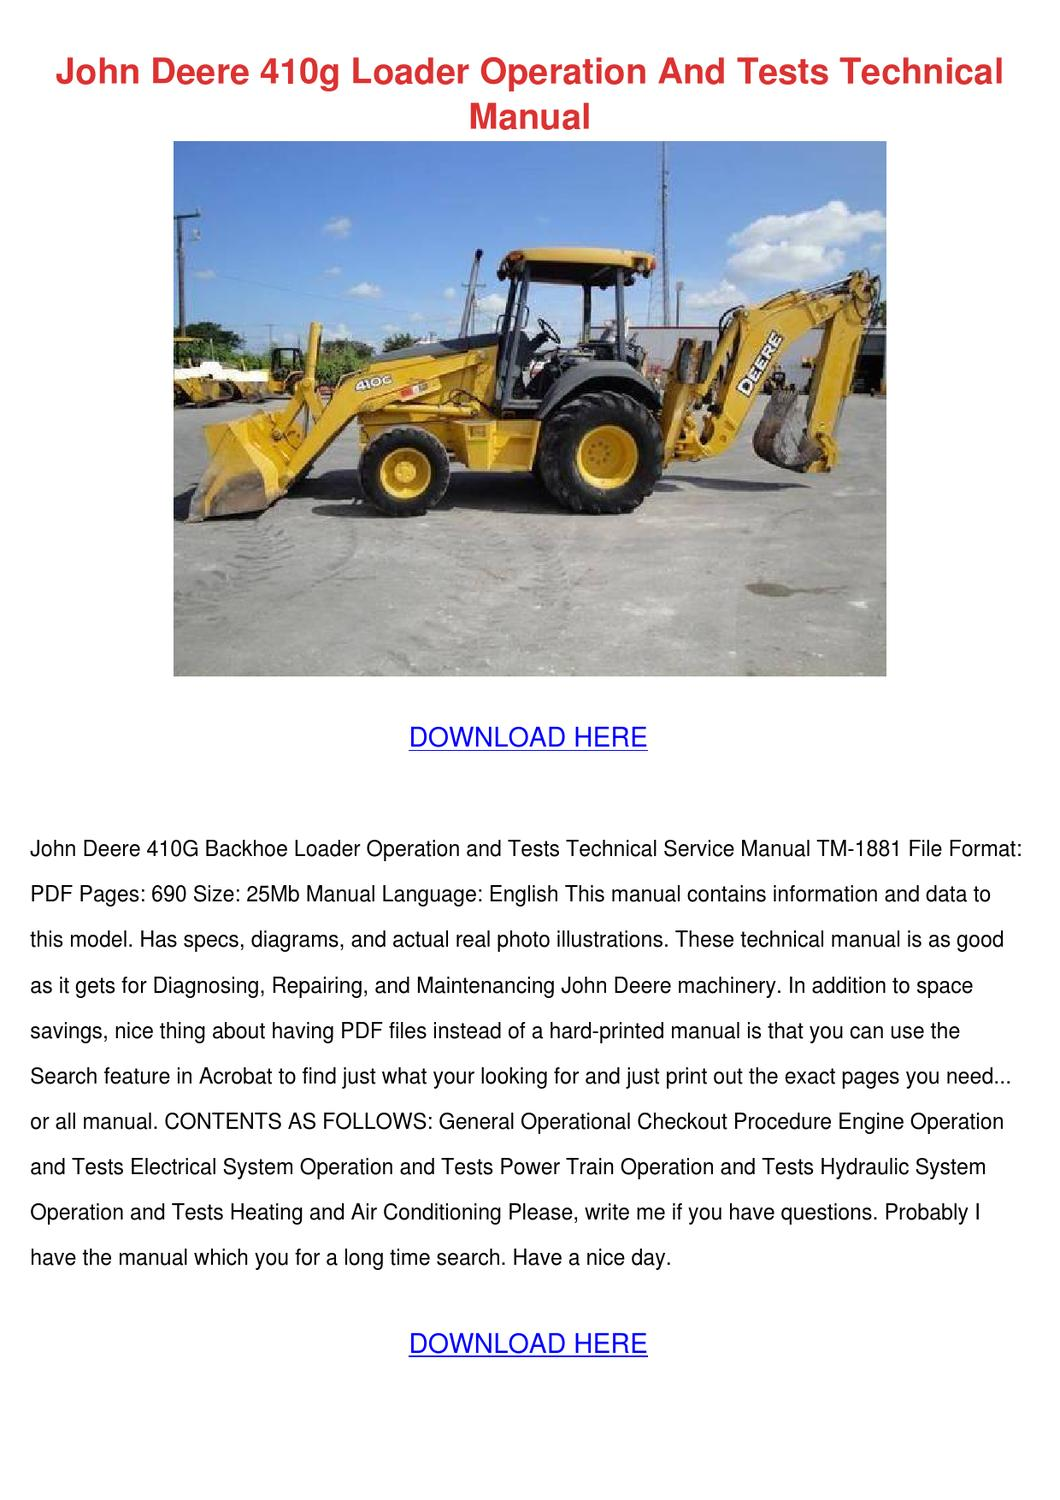 john deere 410g wiring diagram john deere 410g loader operation and tests te by elisa liggons issuu  john deere 410g loader operation and